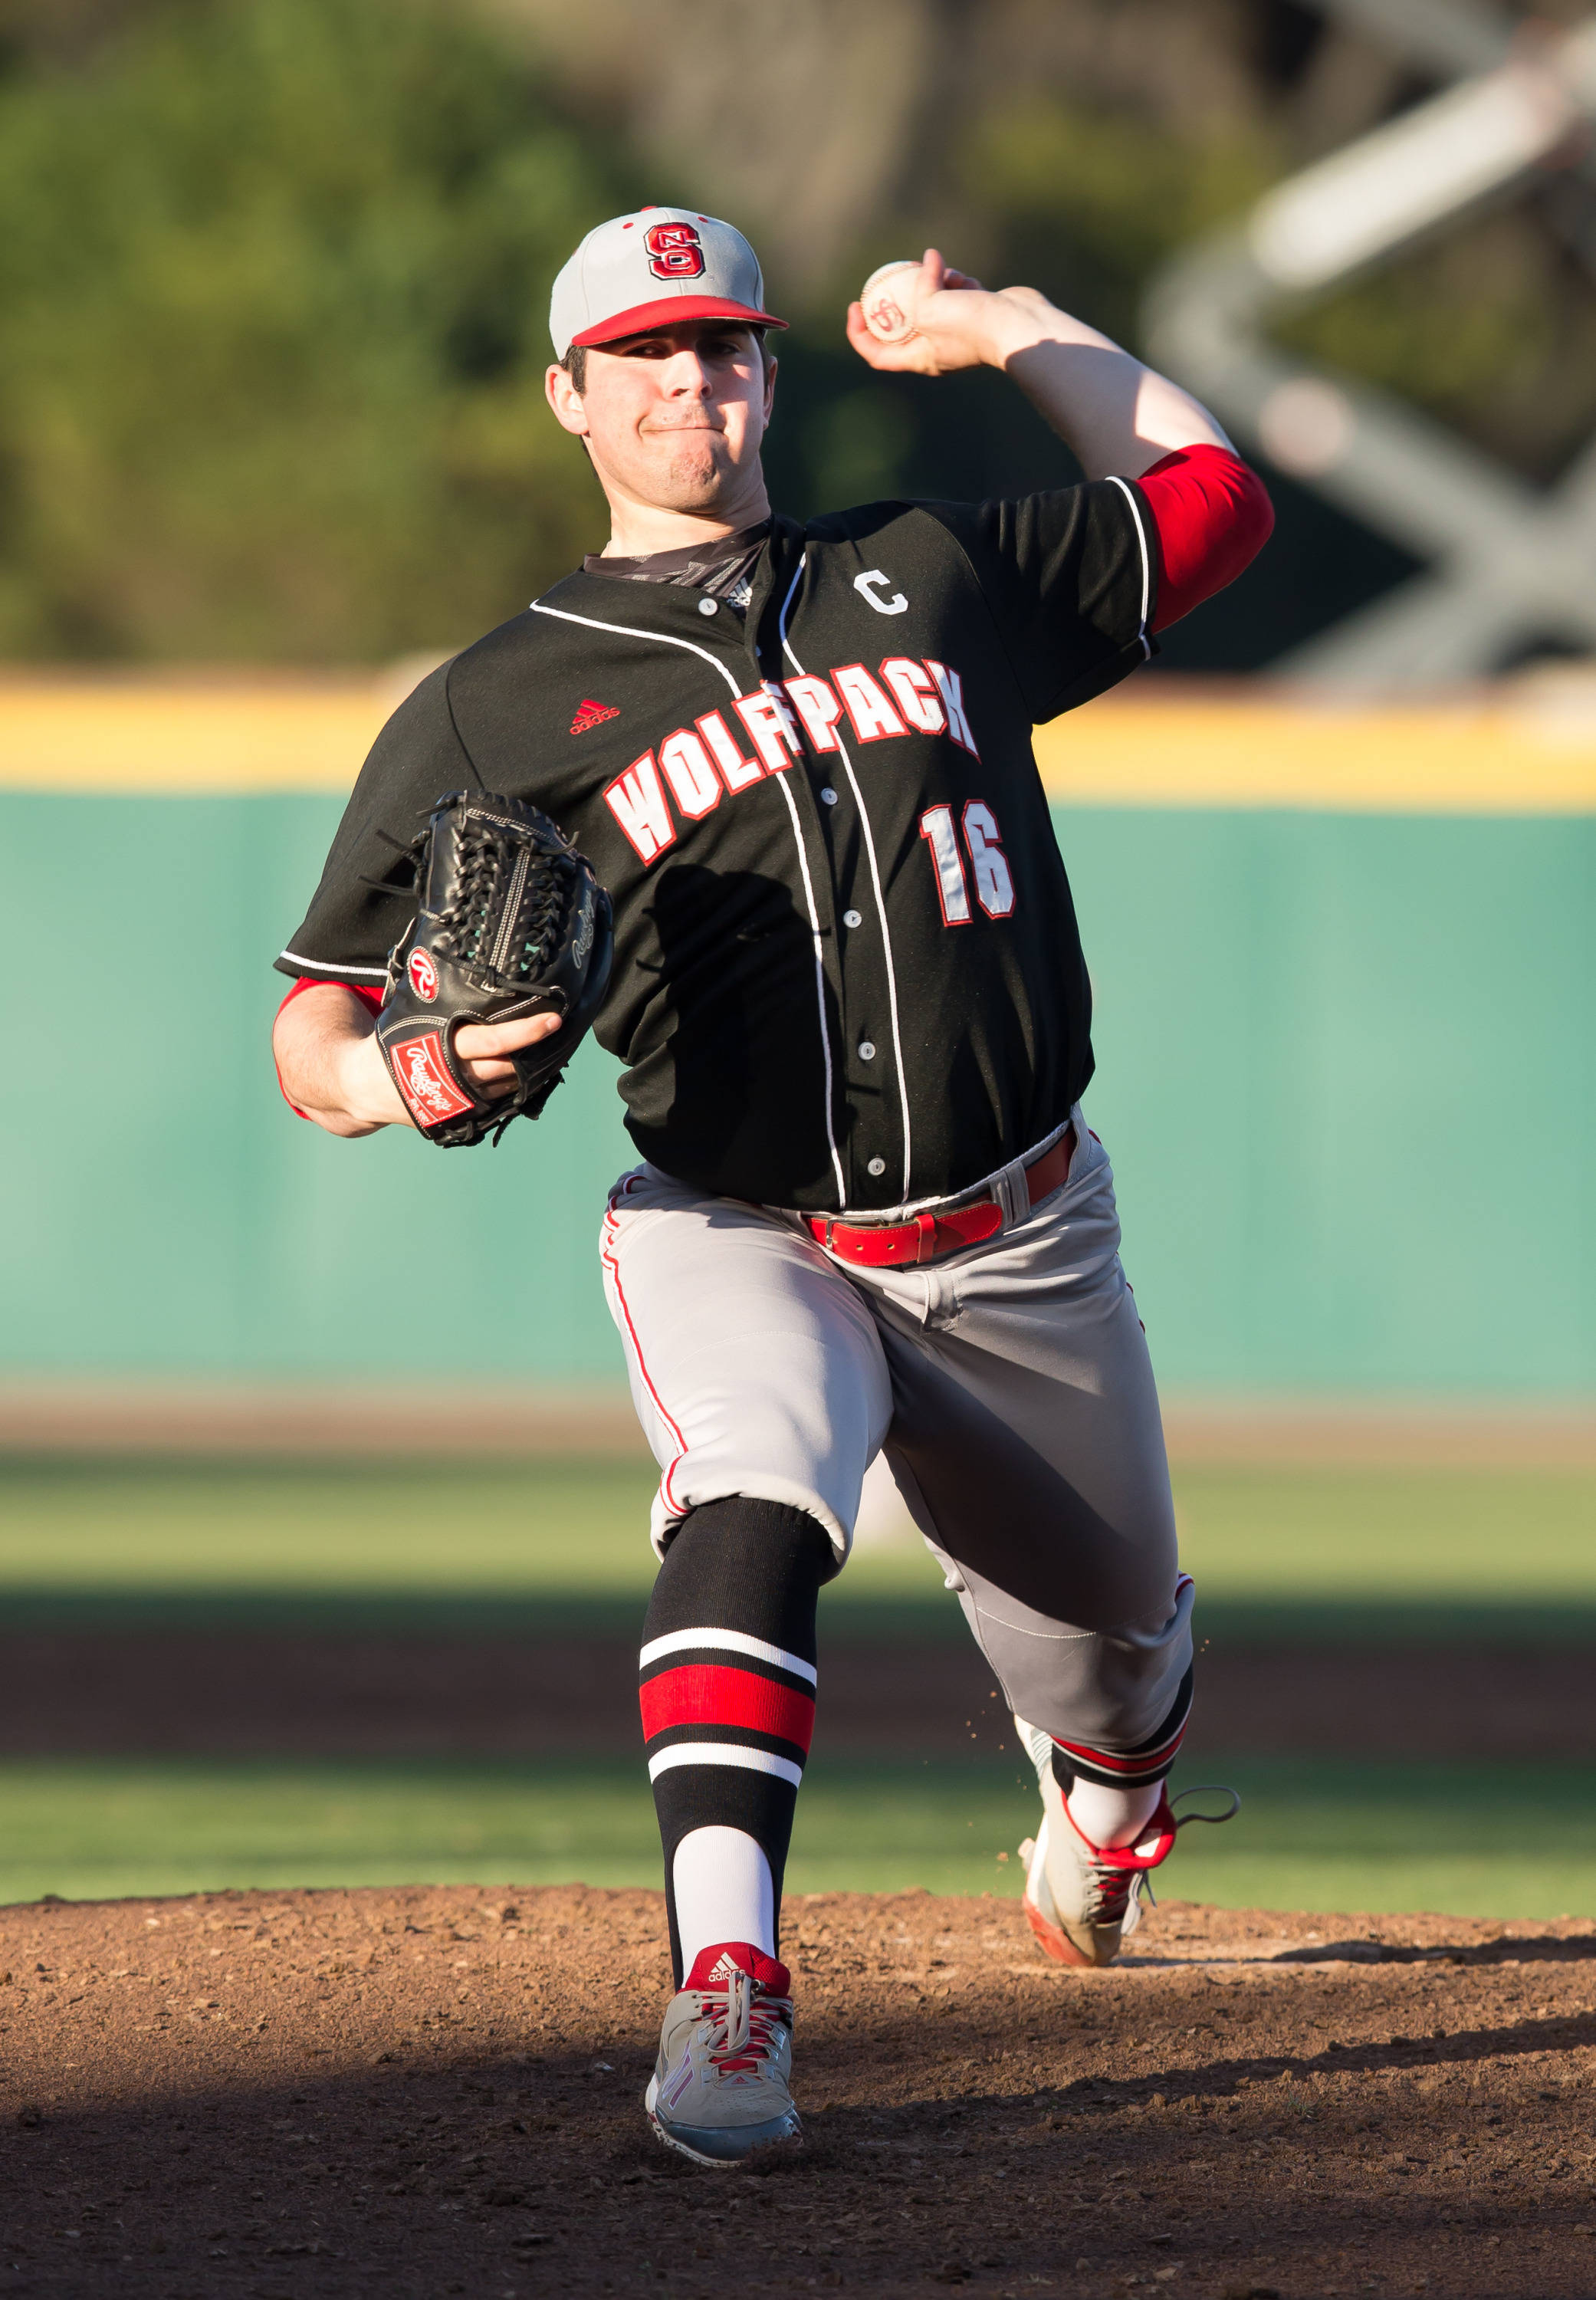 N.C. State pitching ace Carlos Rodon pitched well in a losing effort.